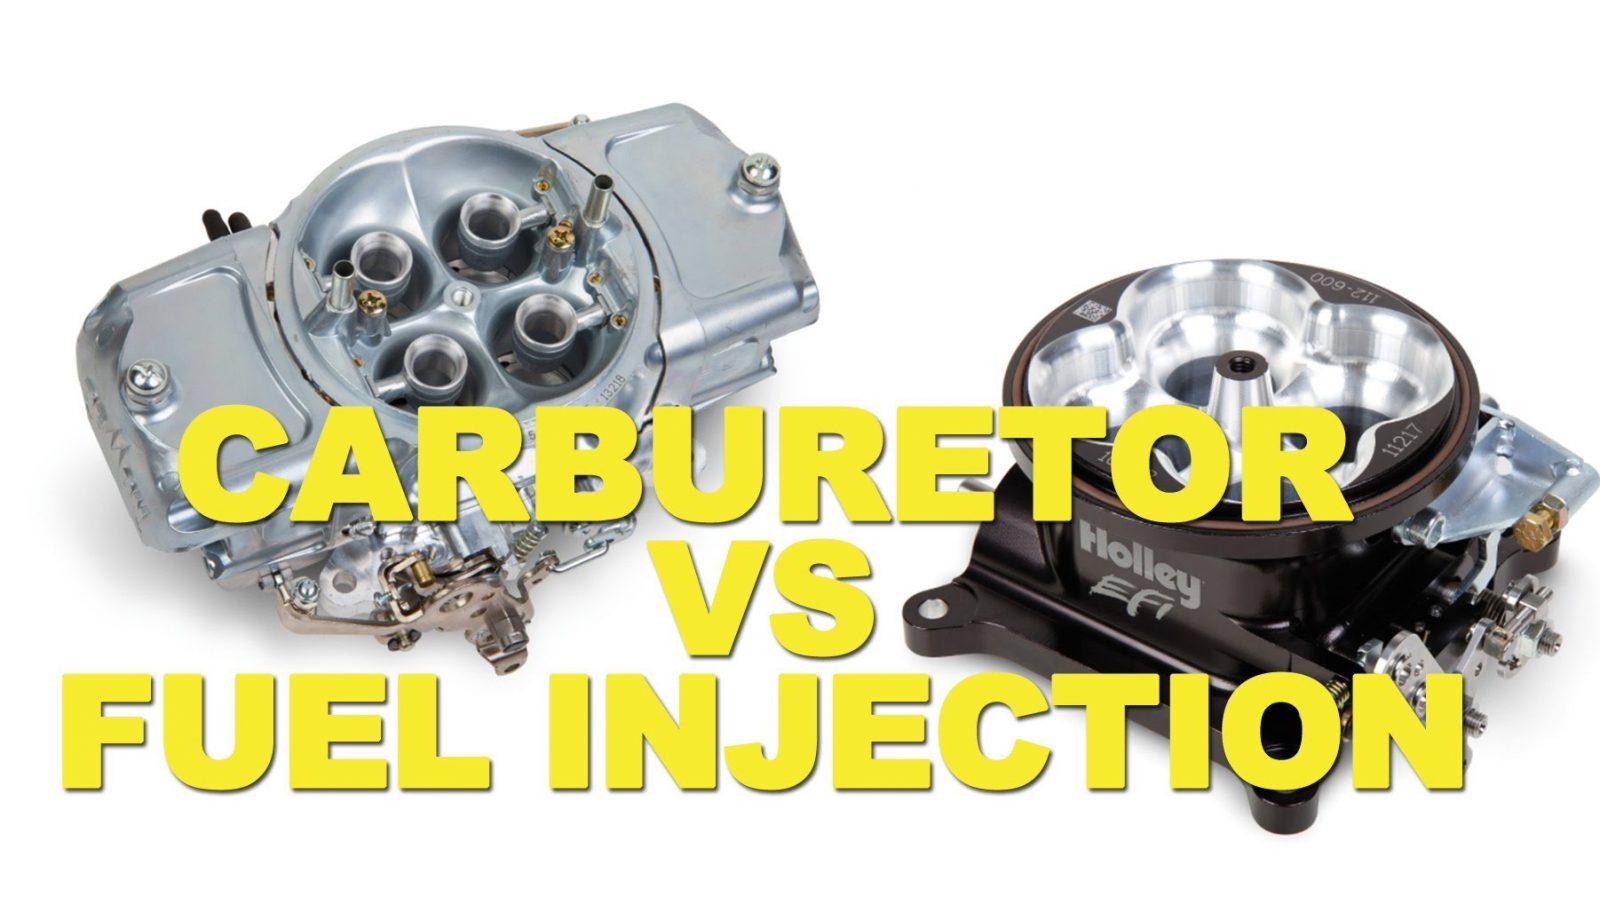 Carburetor vs Fuel Injection: Which One Is the Better Option? - CAR